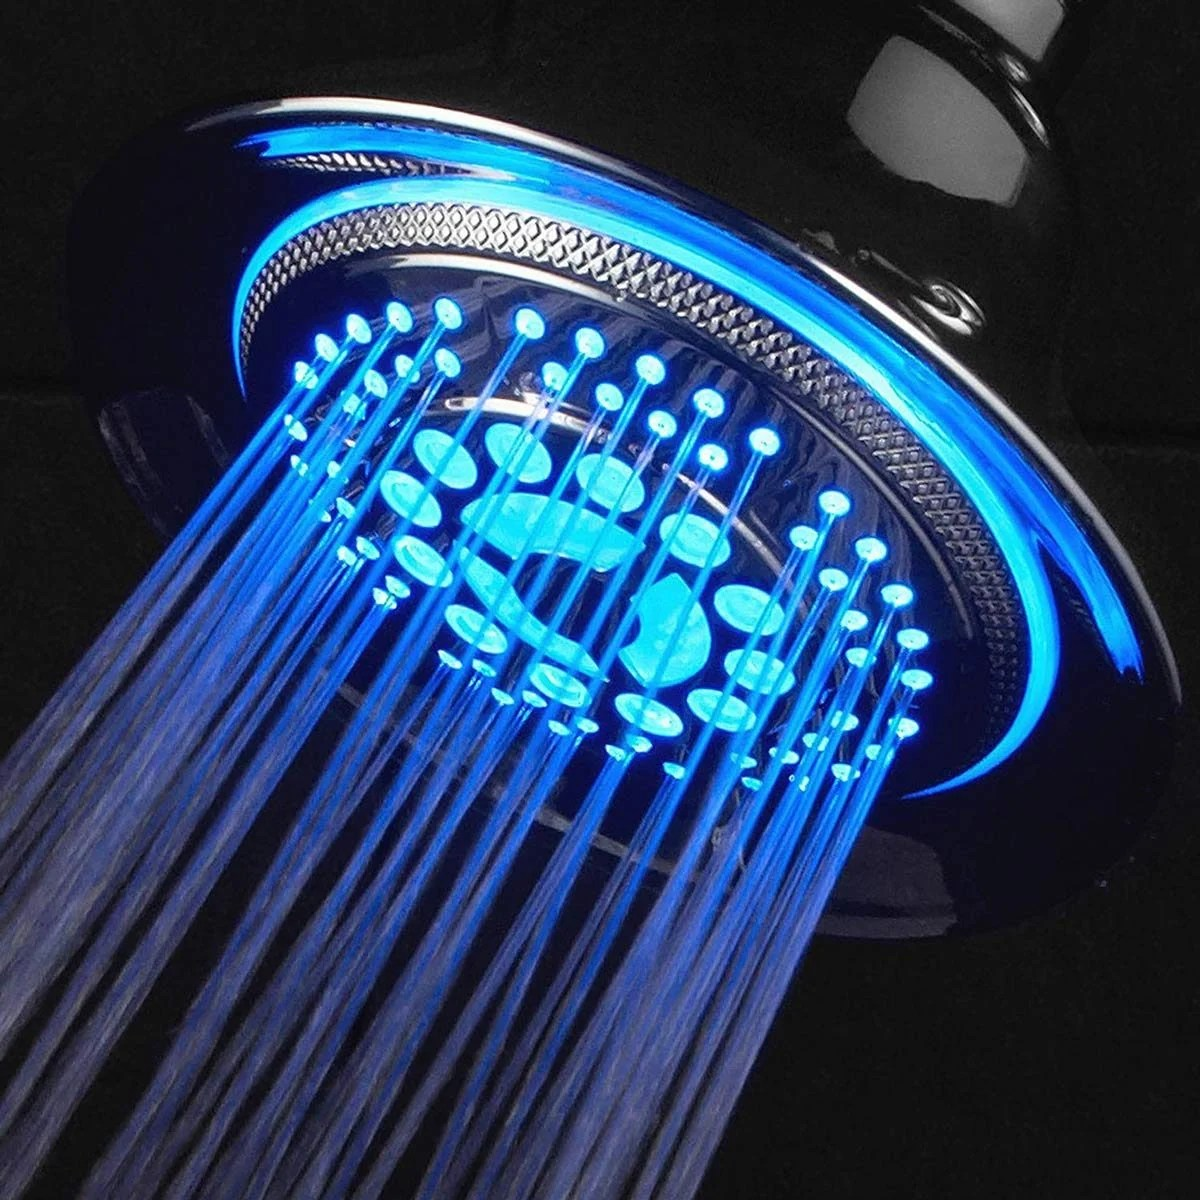 10 Showerheads For A Better Shower Experience The Family